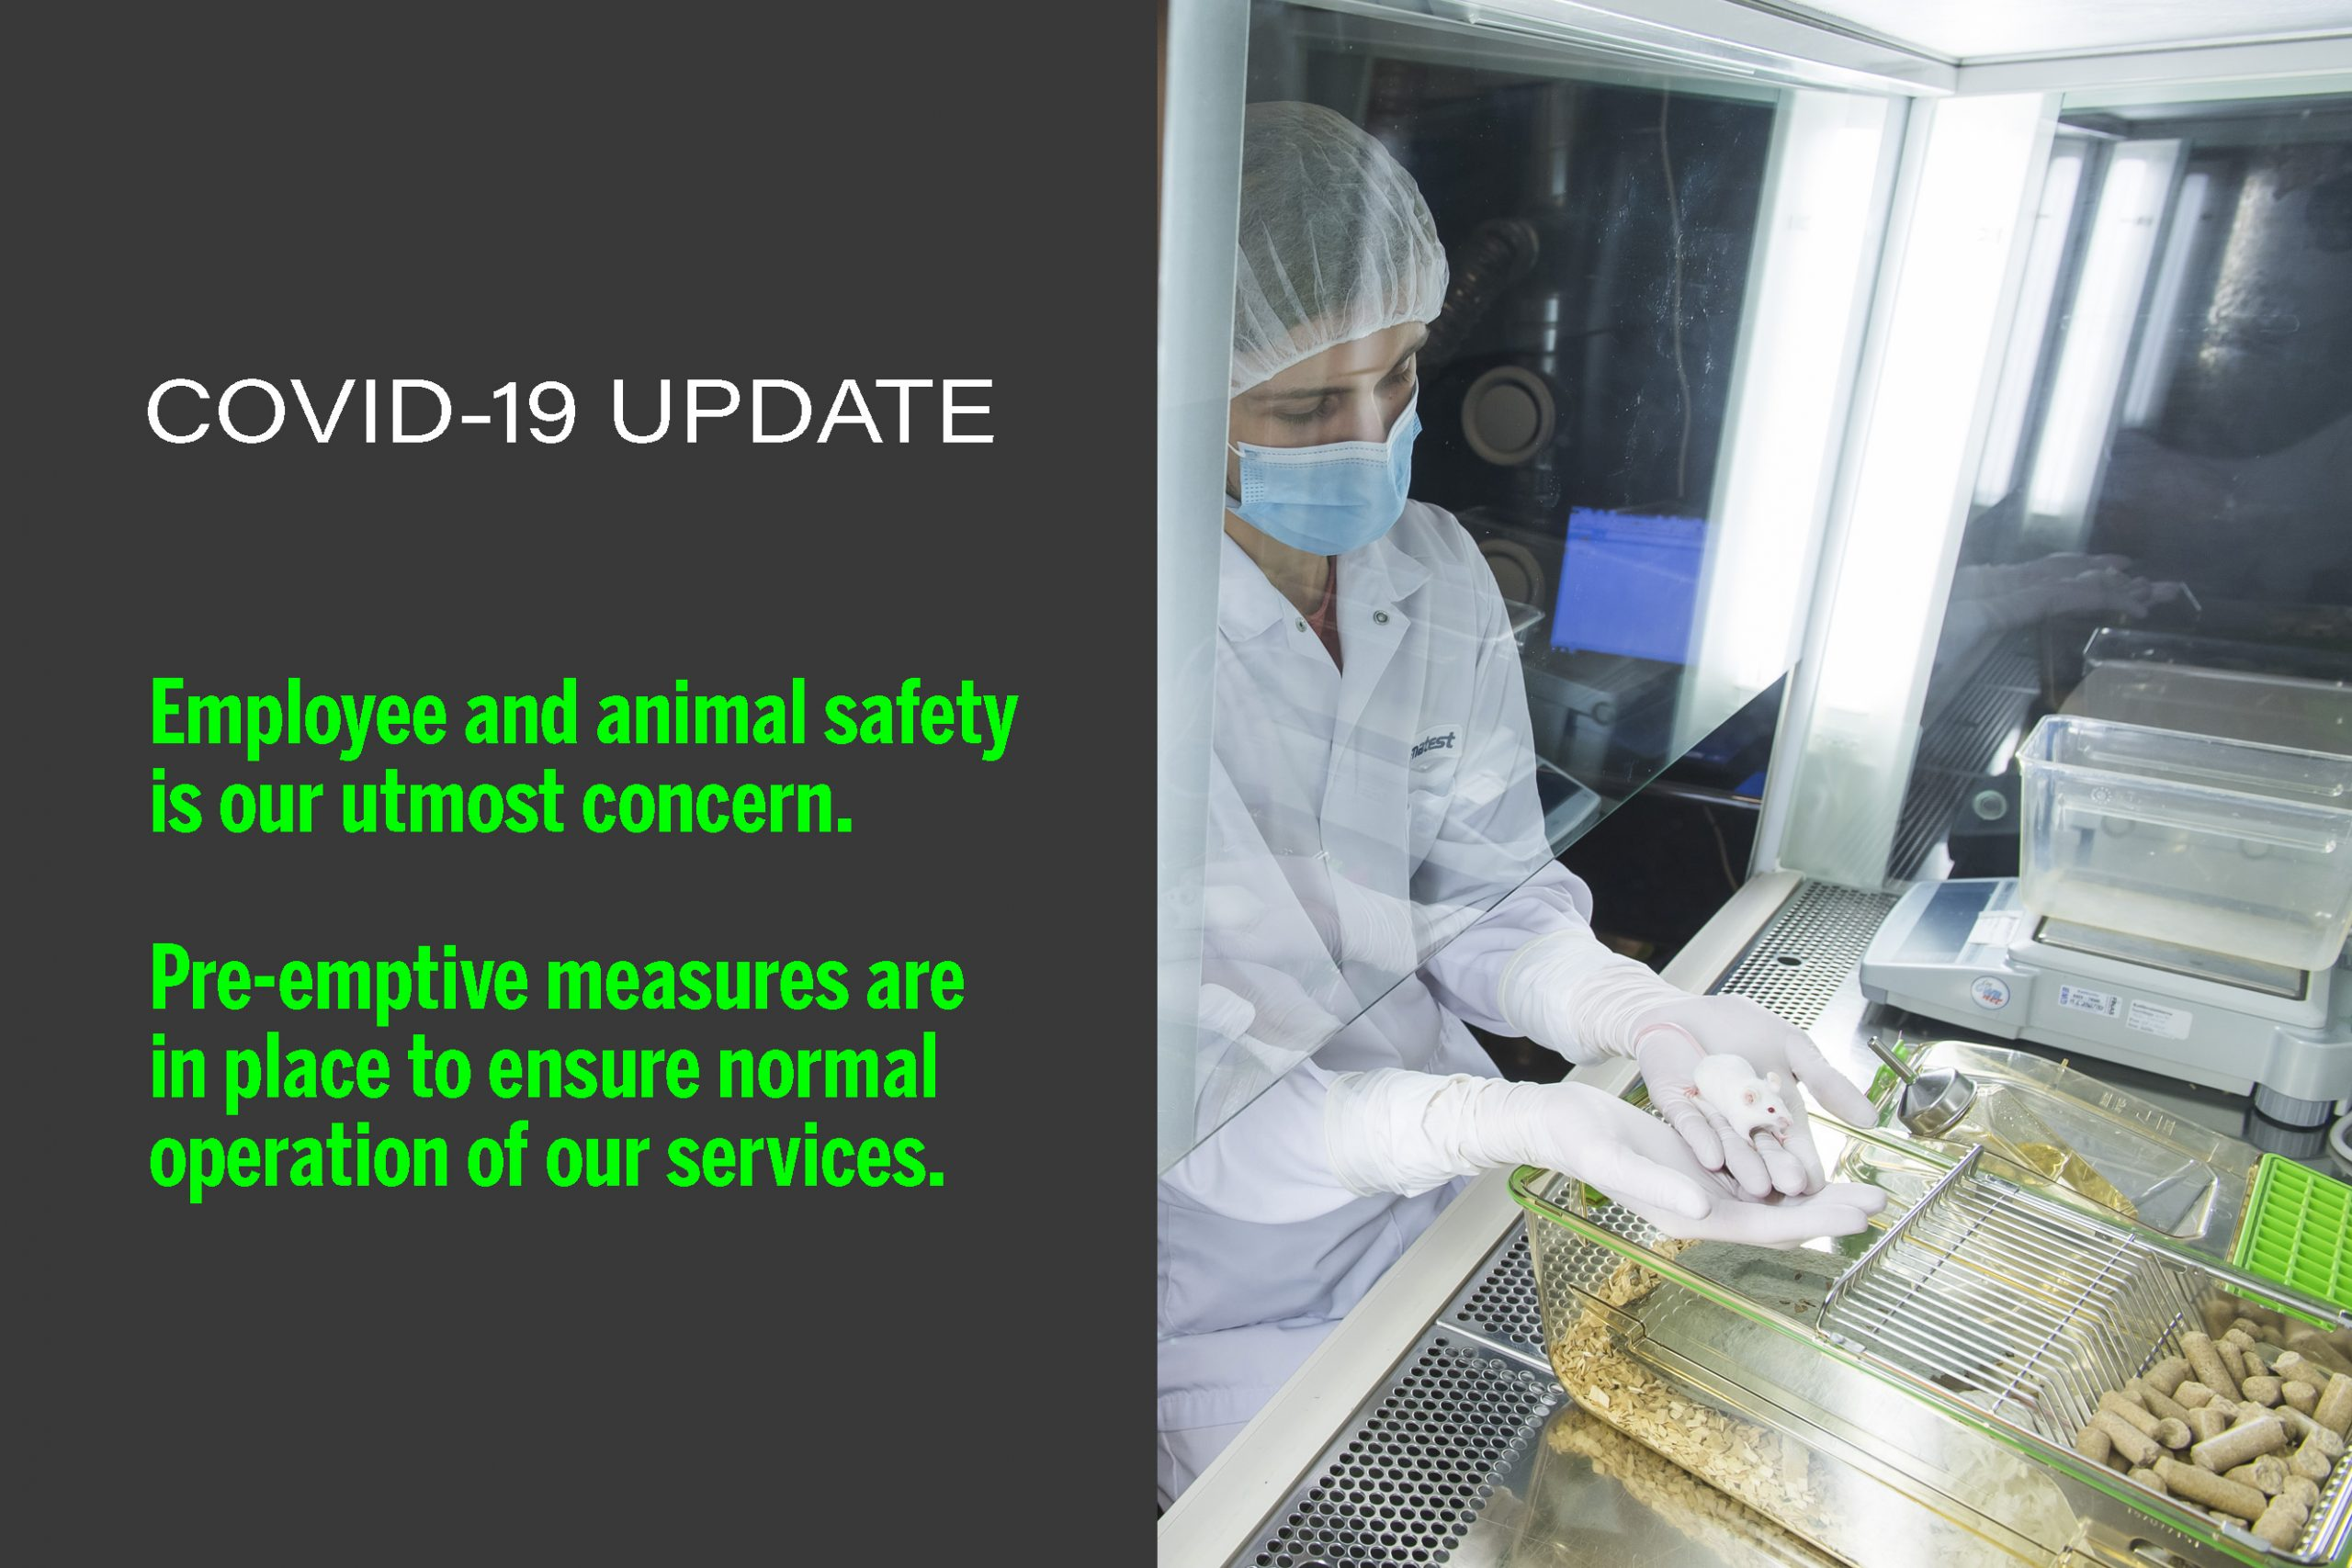 You are currently viewing PHARMATEST'S PROJECTS AND SAFETY DURING THE COVID-19 OUTBREAK